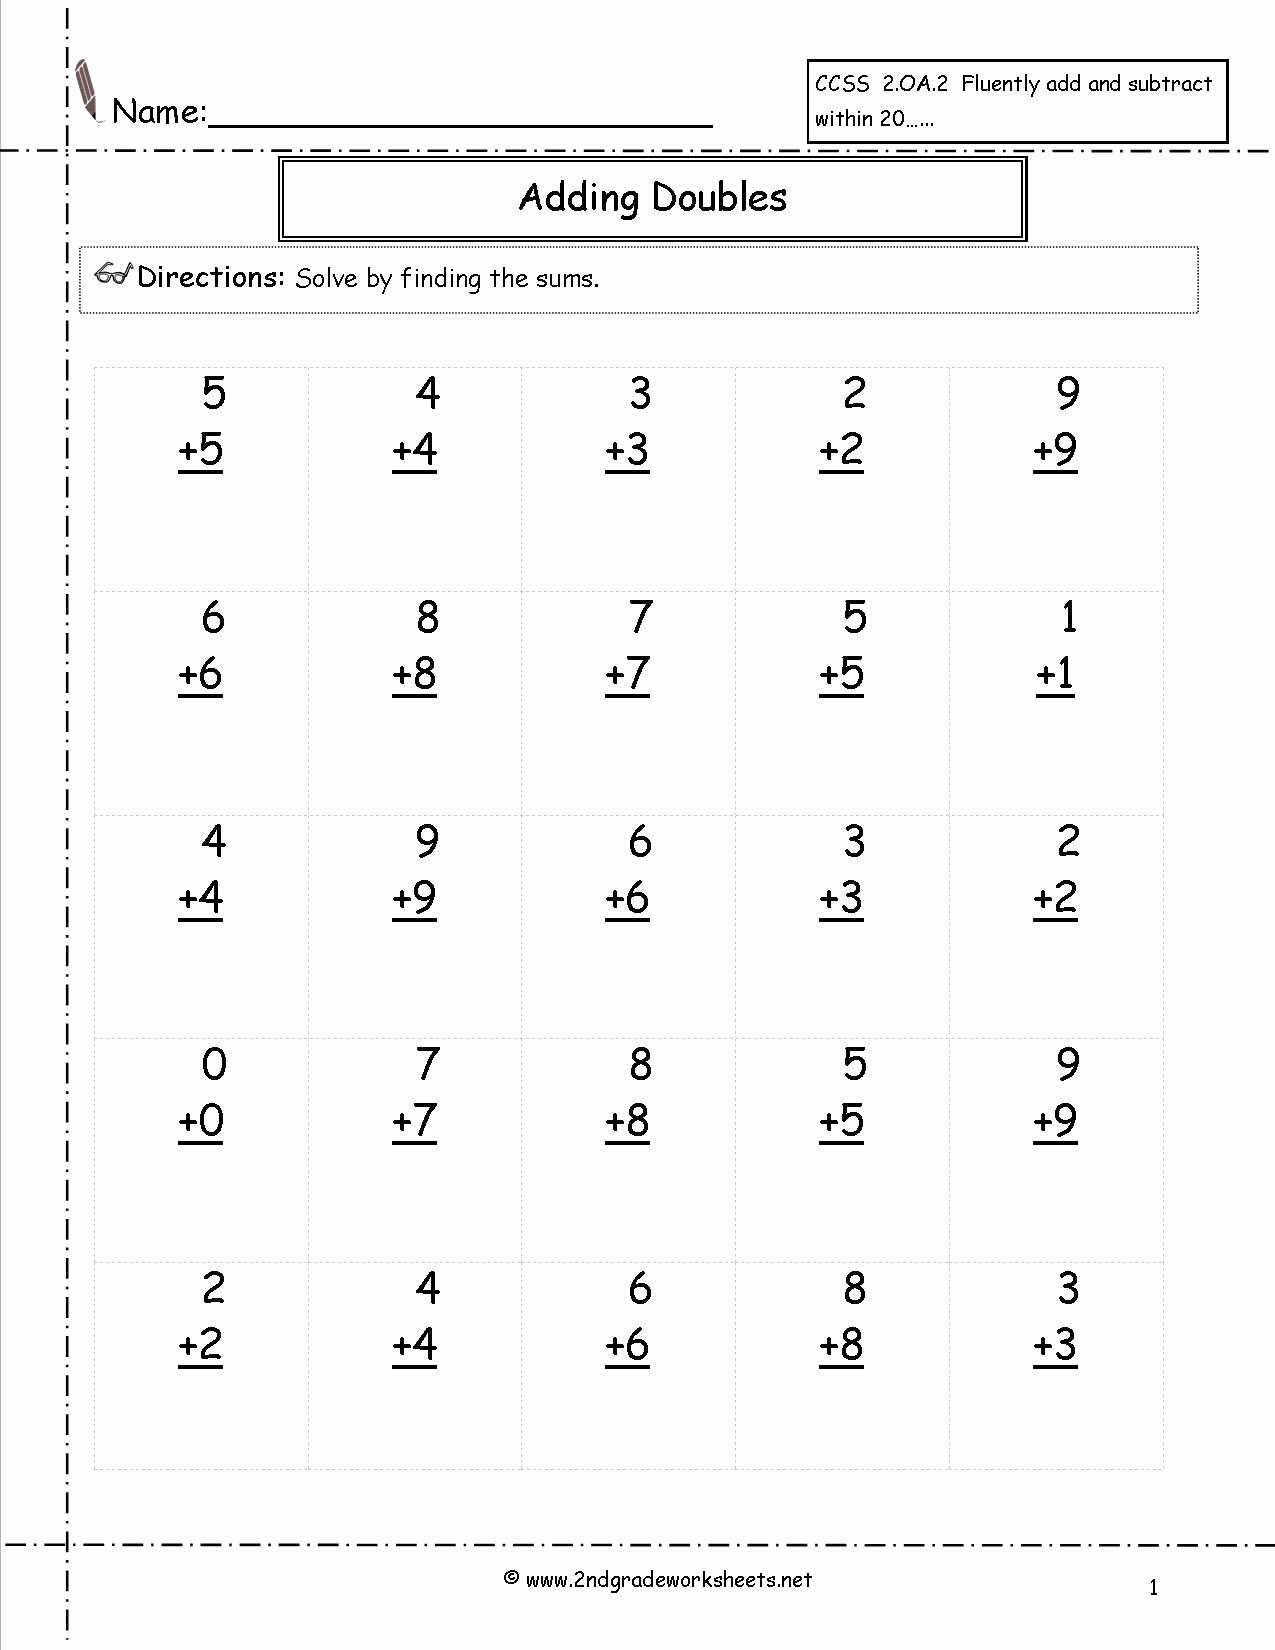 Multiplication Worksheets for First Grade New Doubles Facts Worksheet